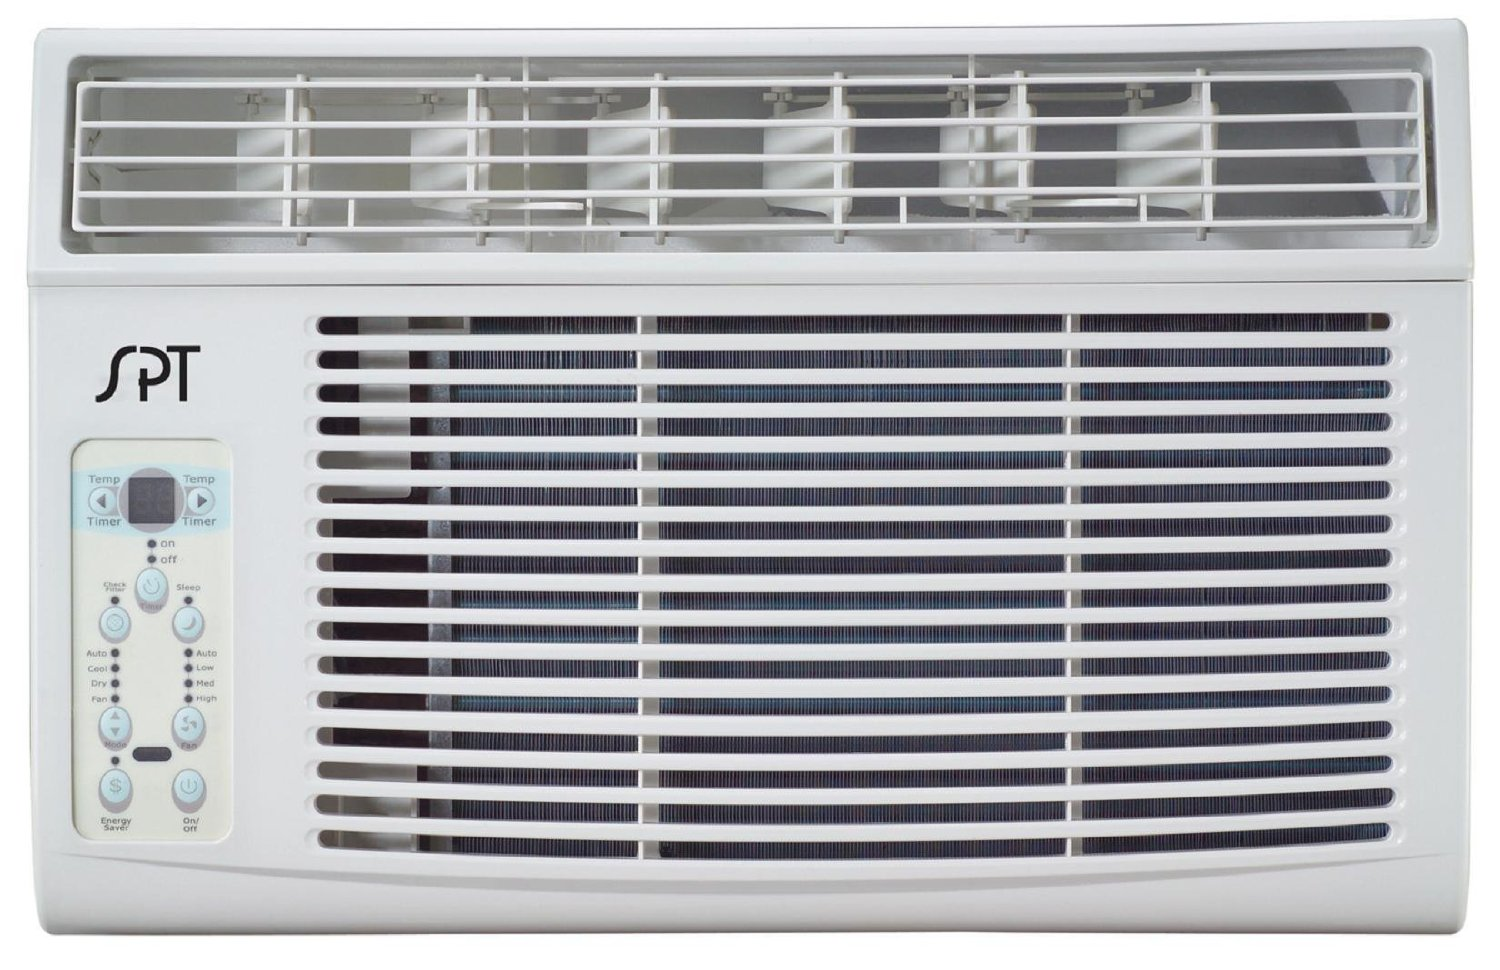 Spt wa 1211s 12000 btu window air conditioner review for 12000 btu window air conditioner room size